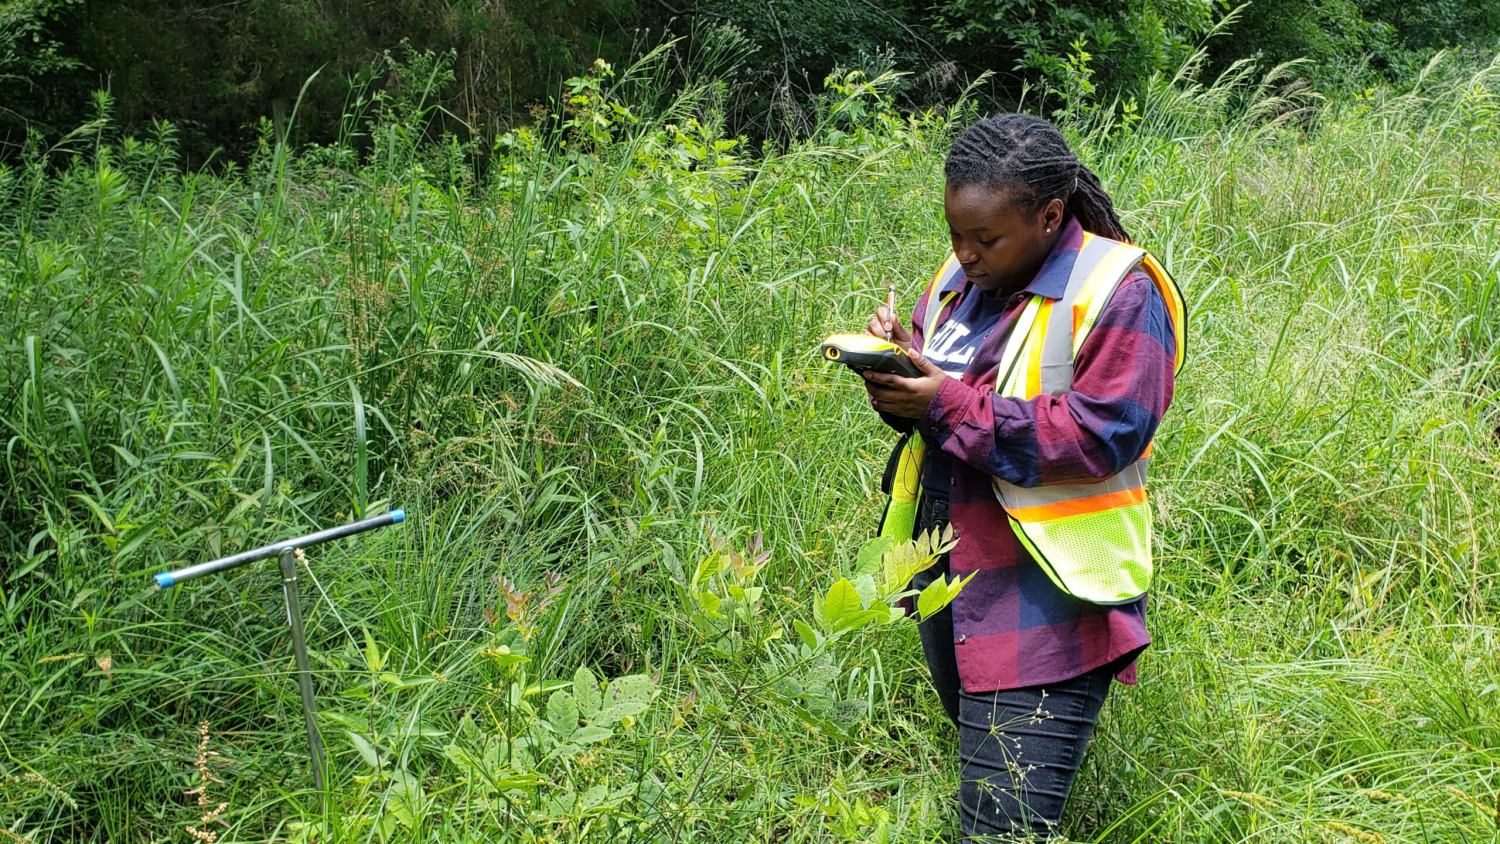 Neverson works in the field outside - Graduation to Vocation: Enhancing the Environment - Forestry and Environmental Resources NCState University